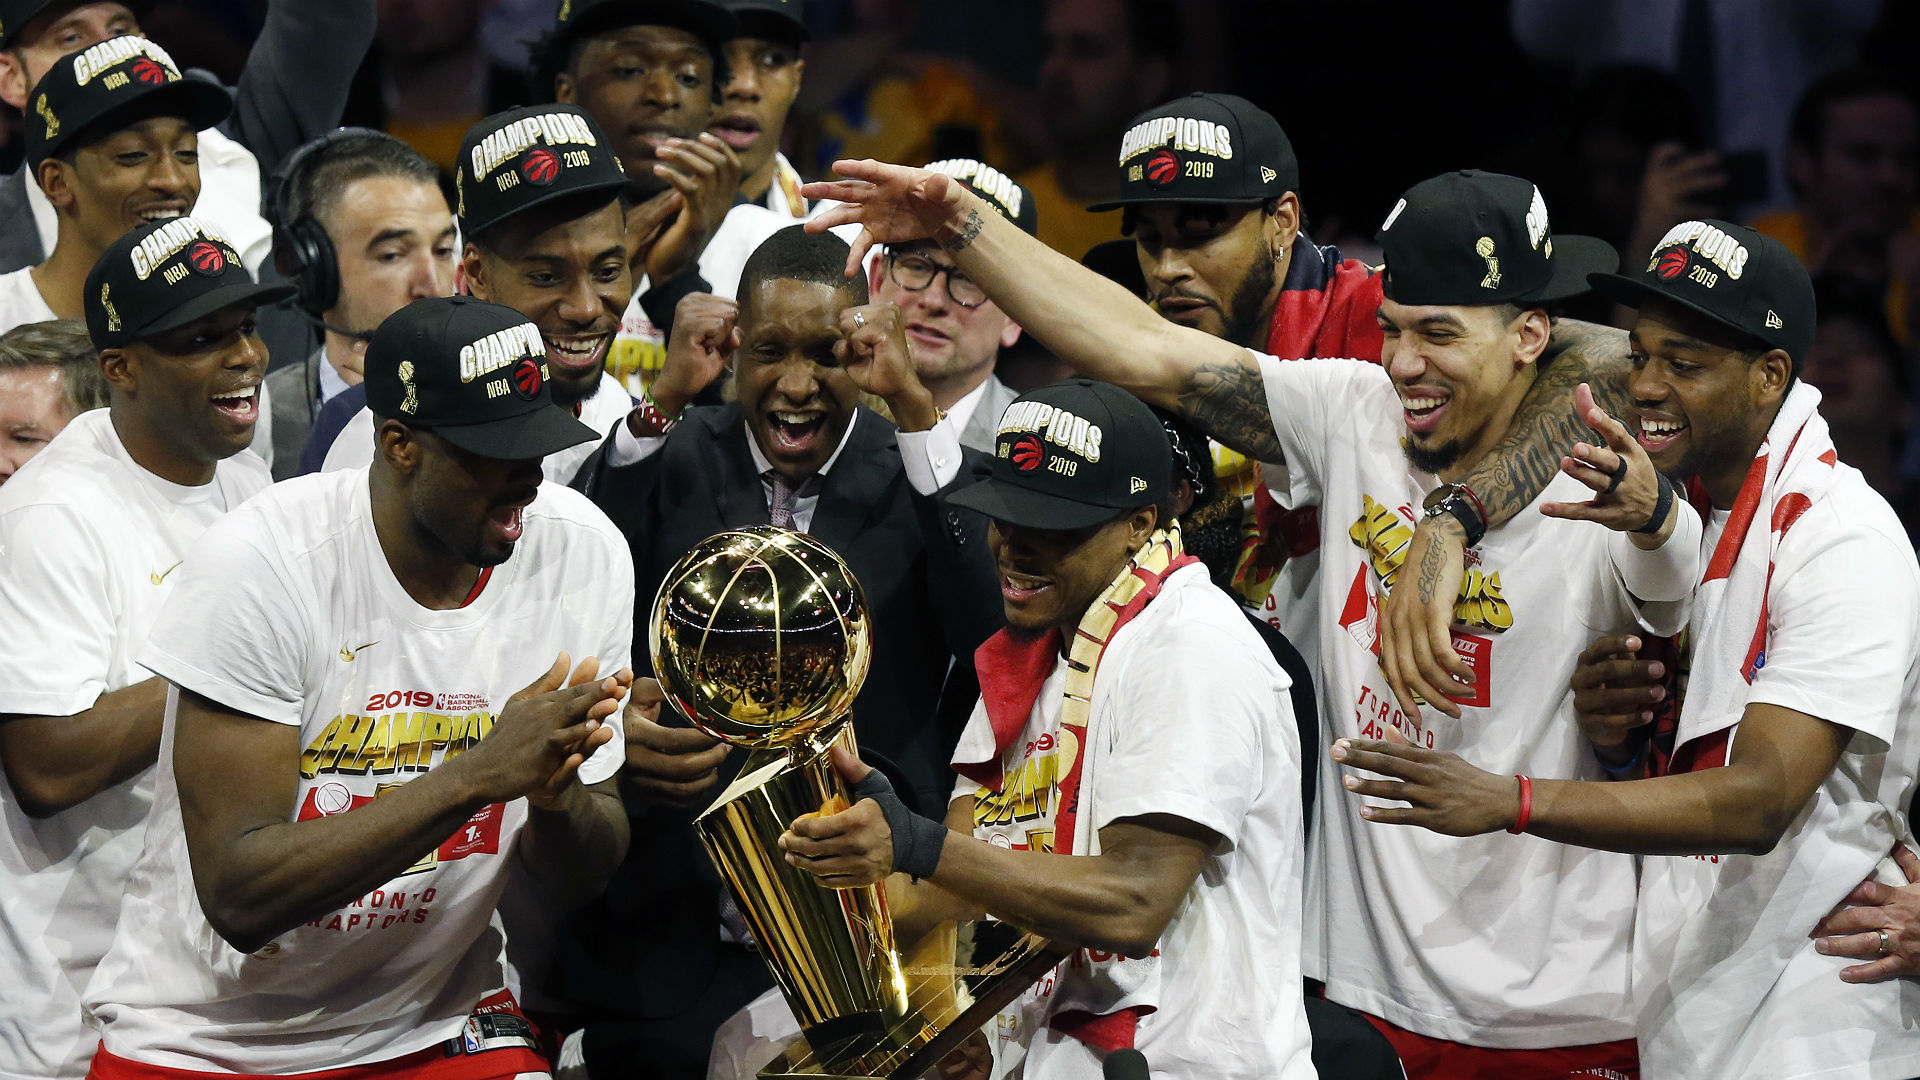 Seven key stats from Raptors' NBA championship run